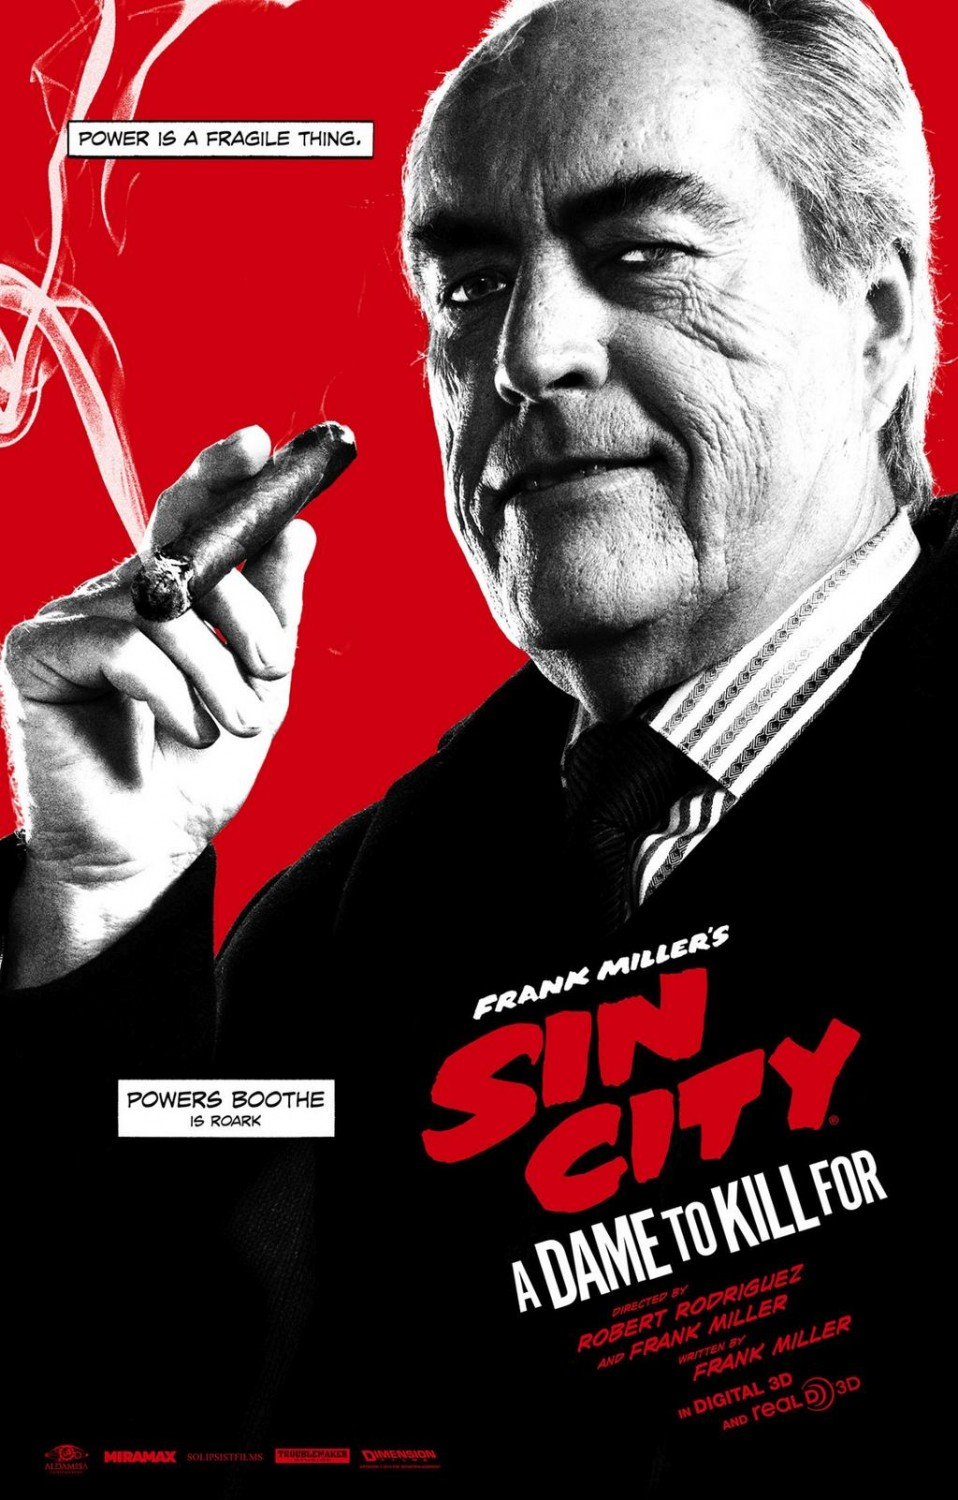 Sin City A Dame to Kill For-Official Poster Banner XLG-11AGOSTO2014-01